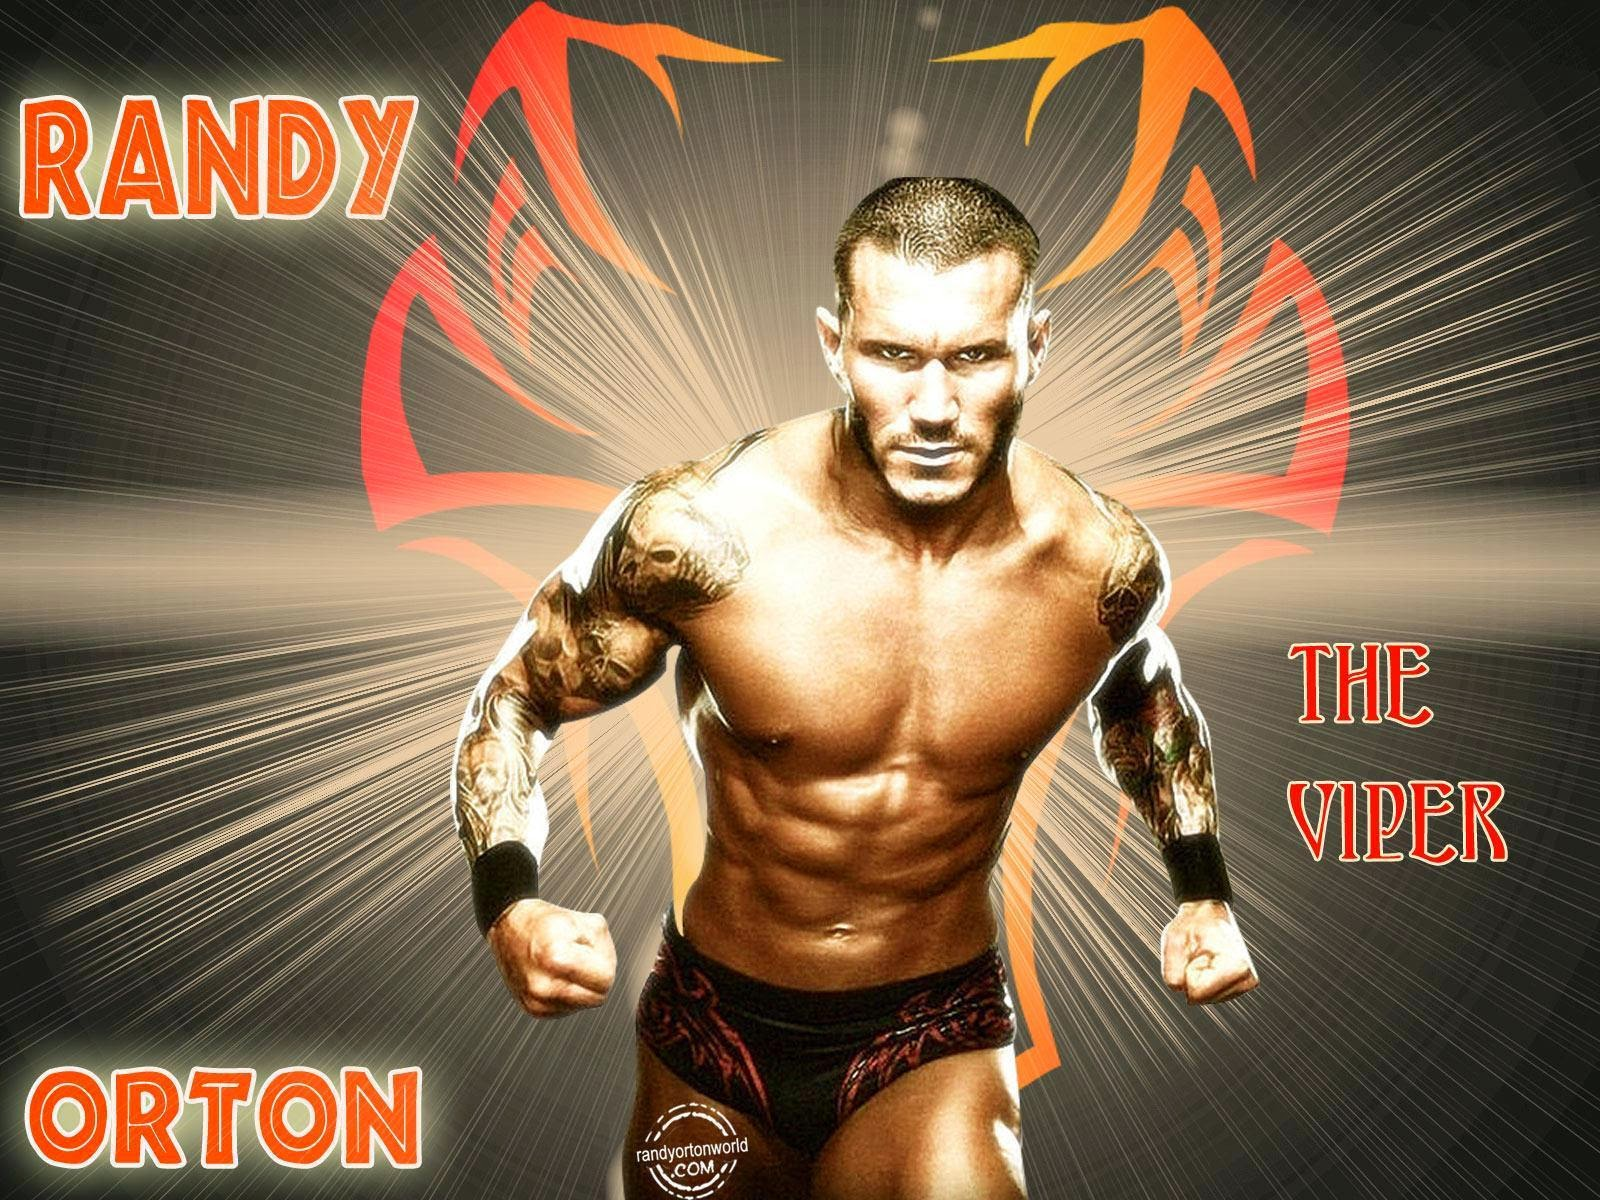 Randy orton the viper hd wallpapers wwe wallpapers free for Cool wwe pictures